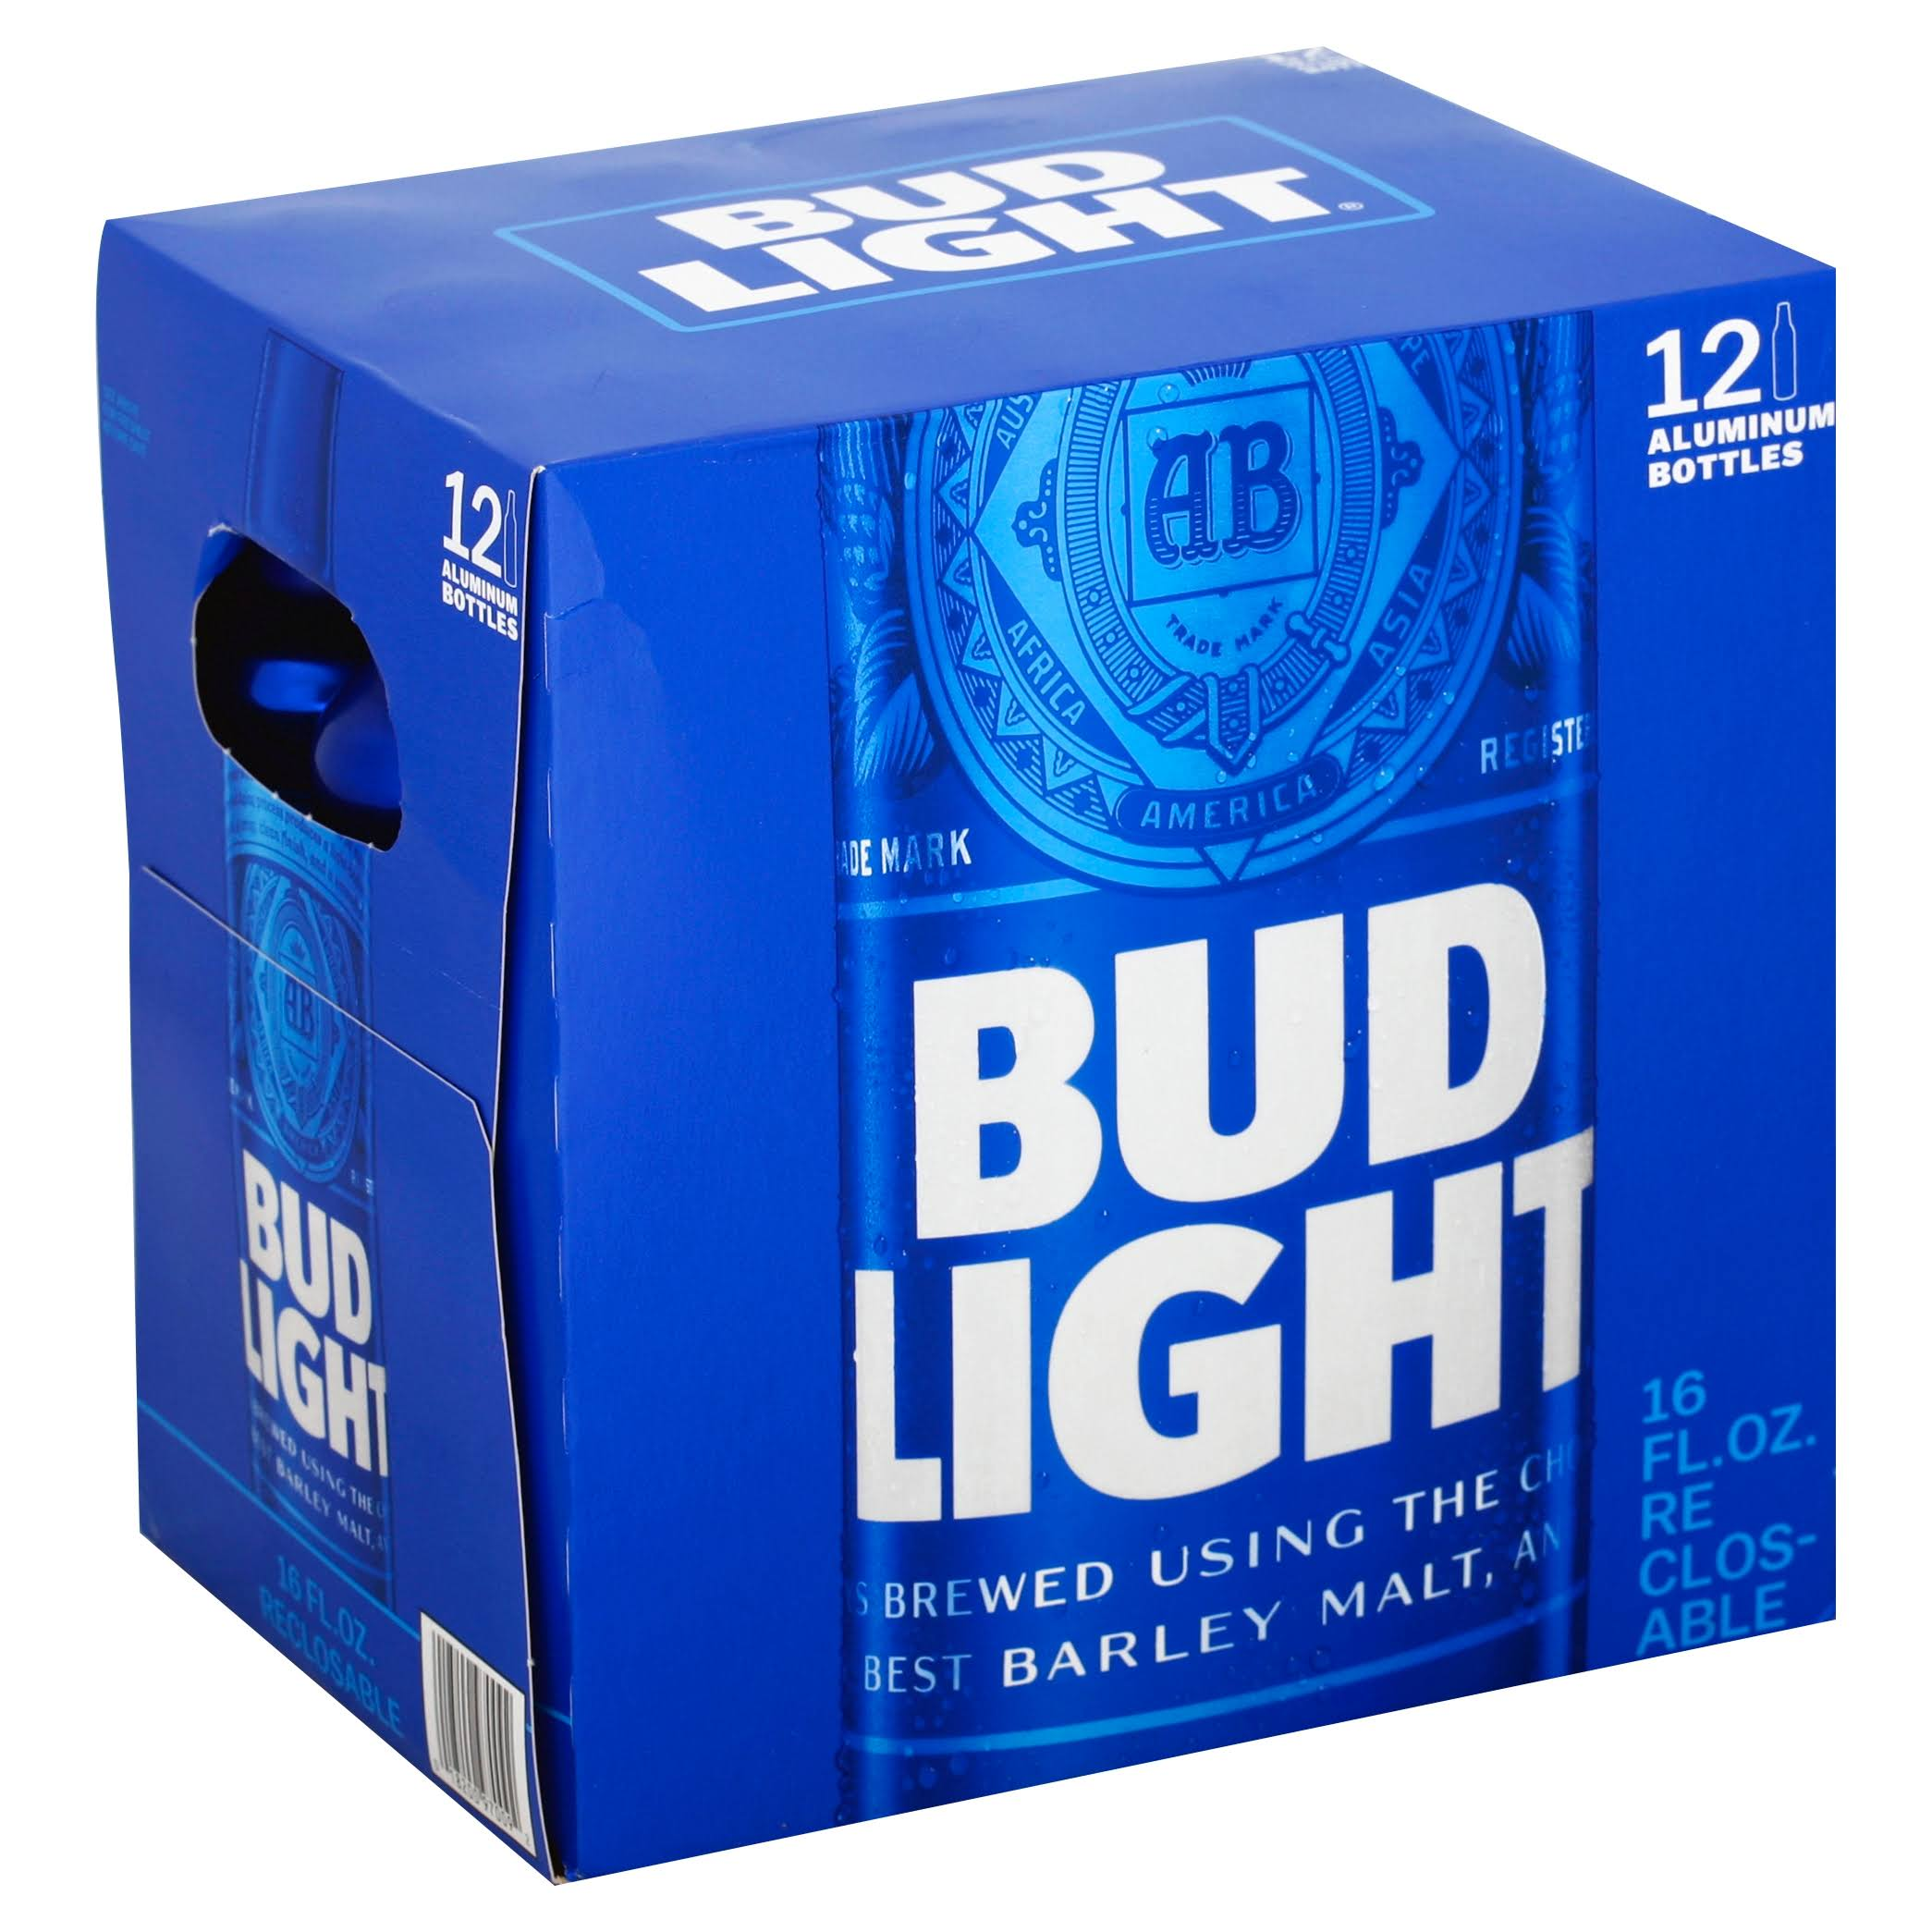 Bud Light Beer - 12 Aluminum Bottles